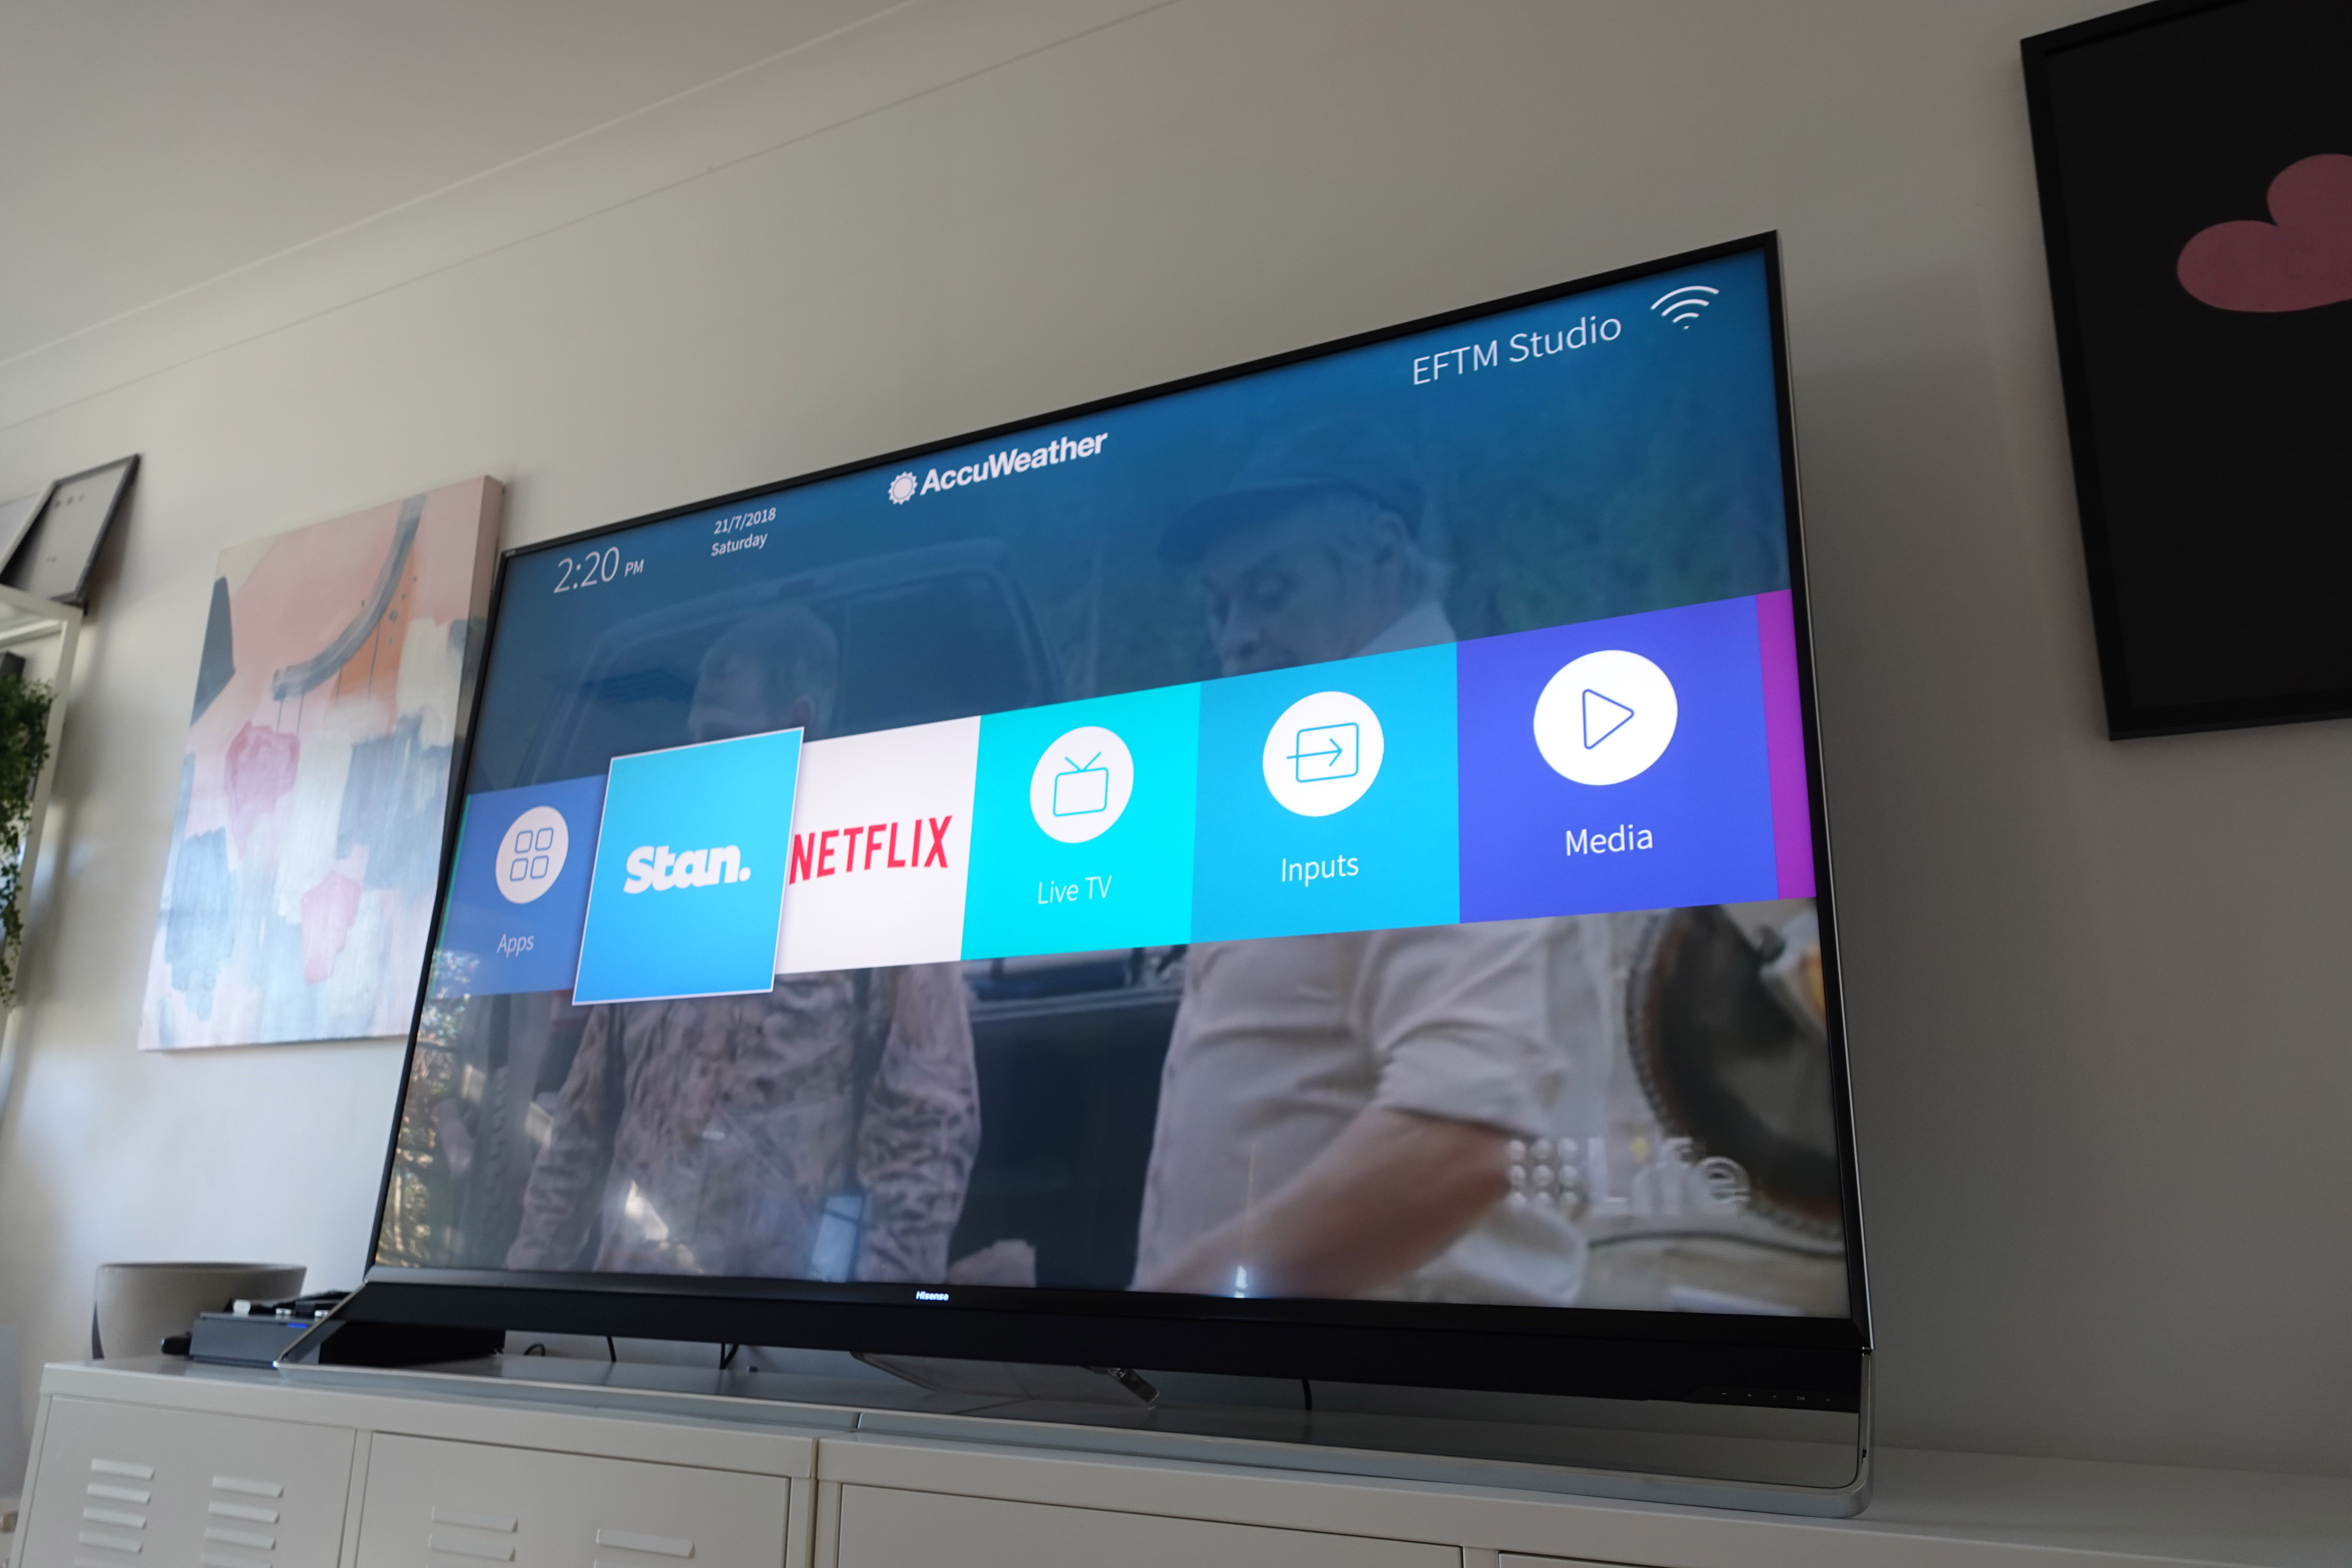 Hisense 75 Inch Series 9 ULED Review - Go Big or Go Home » EFTM